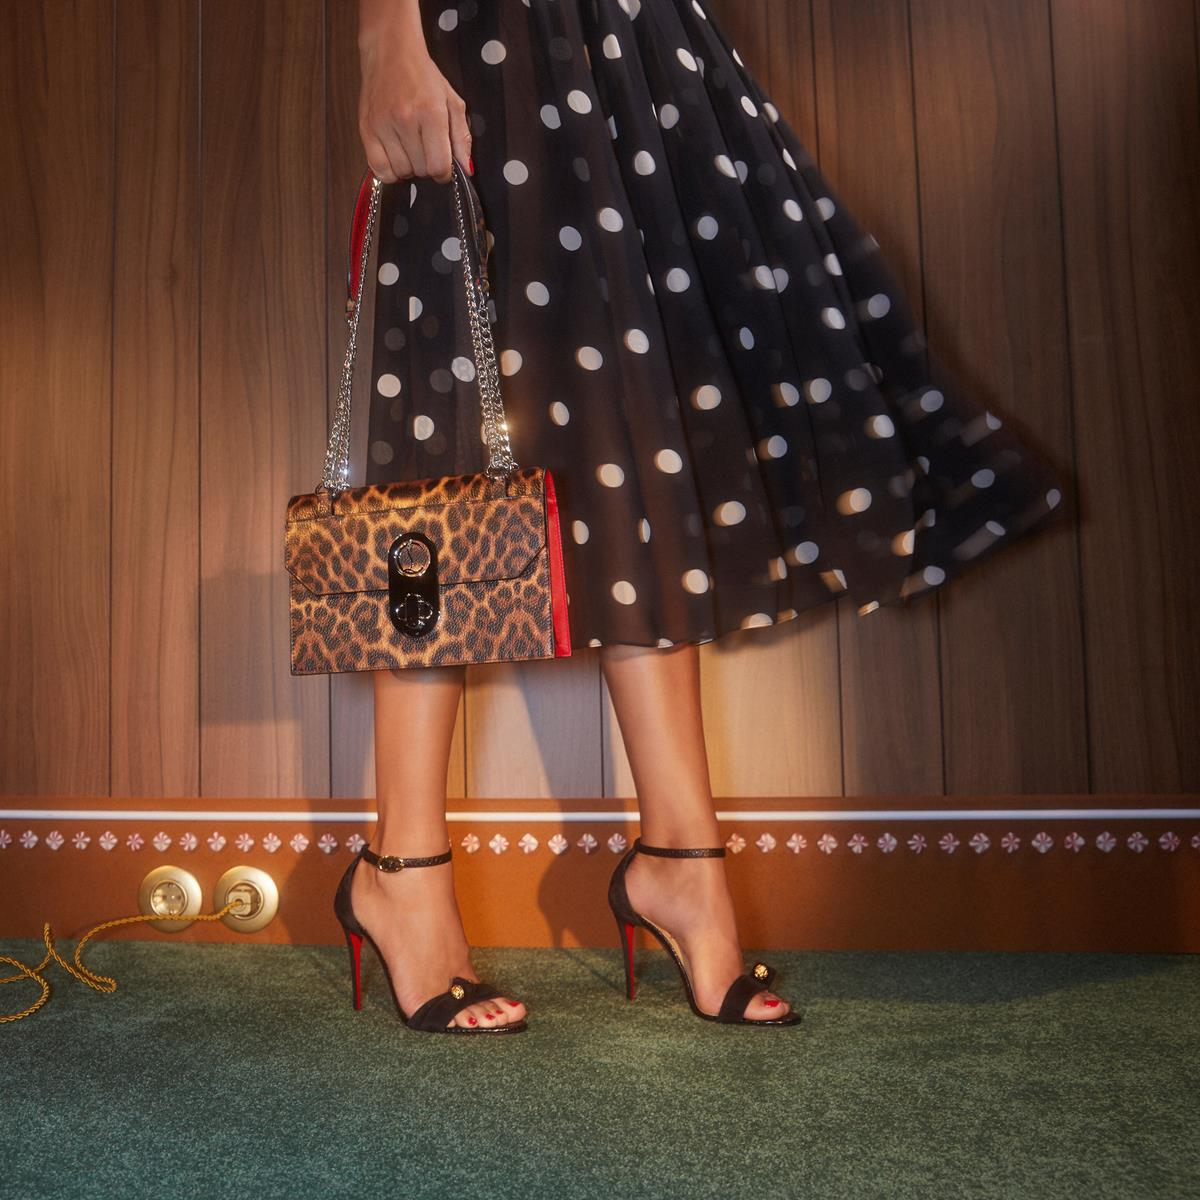 christian louboutin christmas campaing shoes accessories